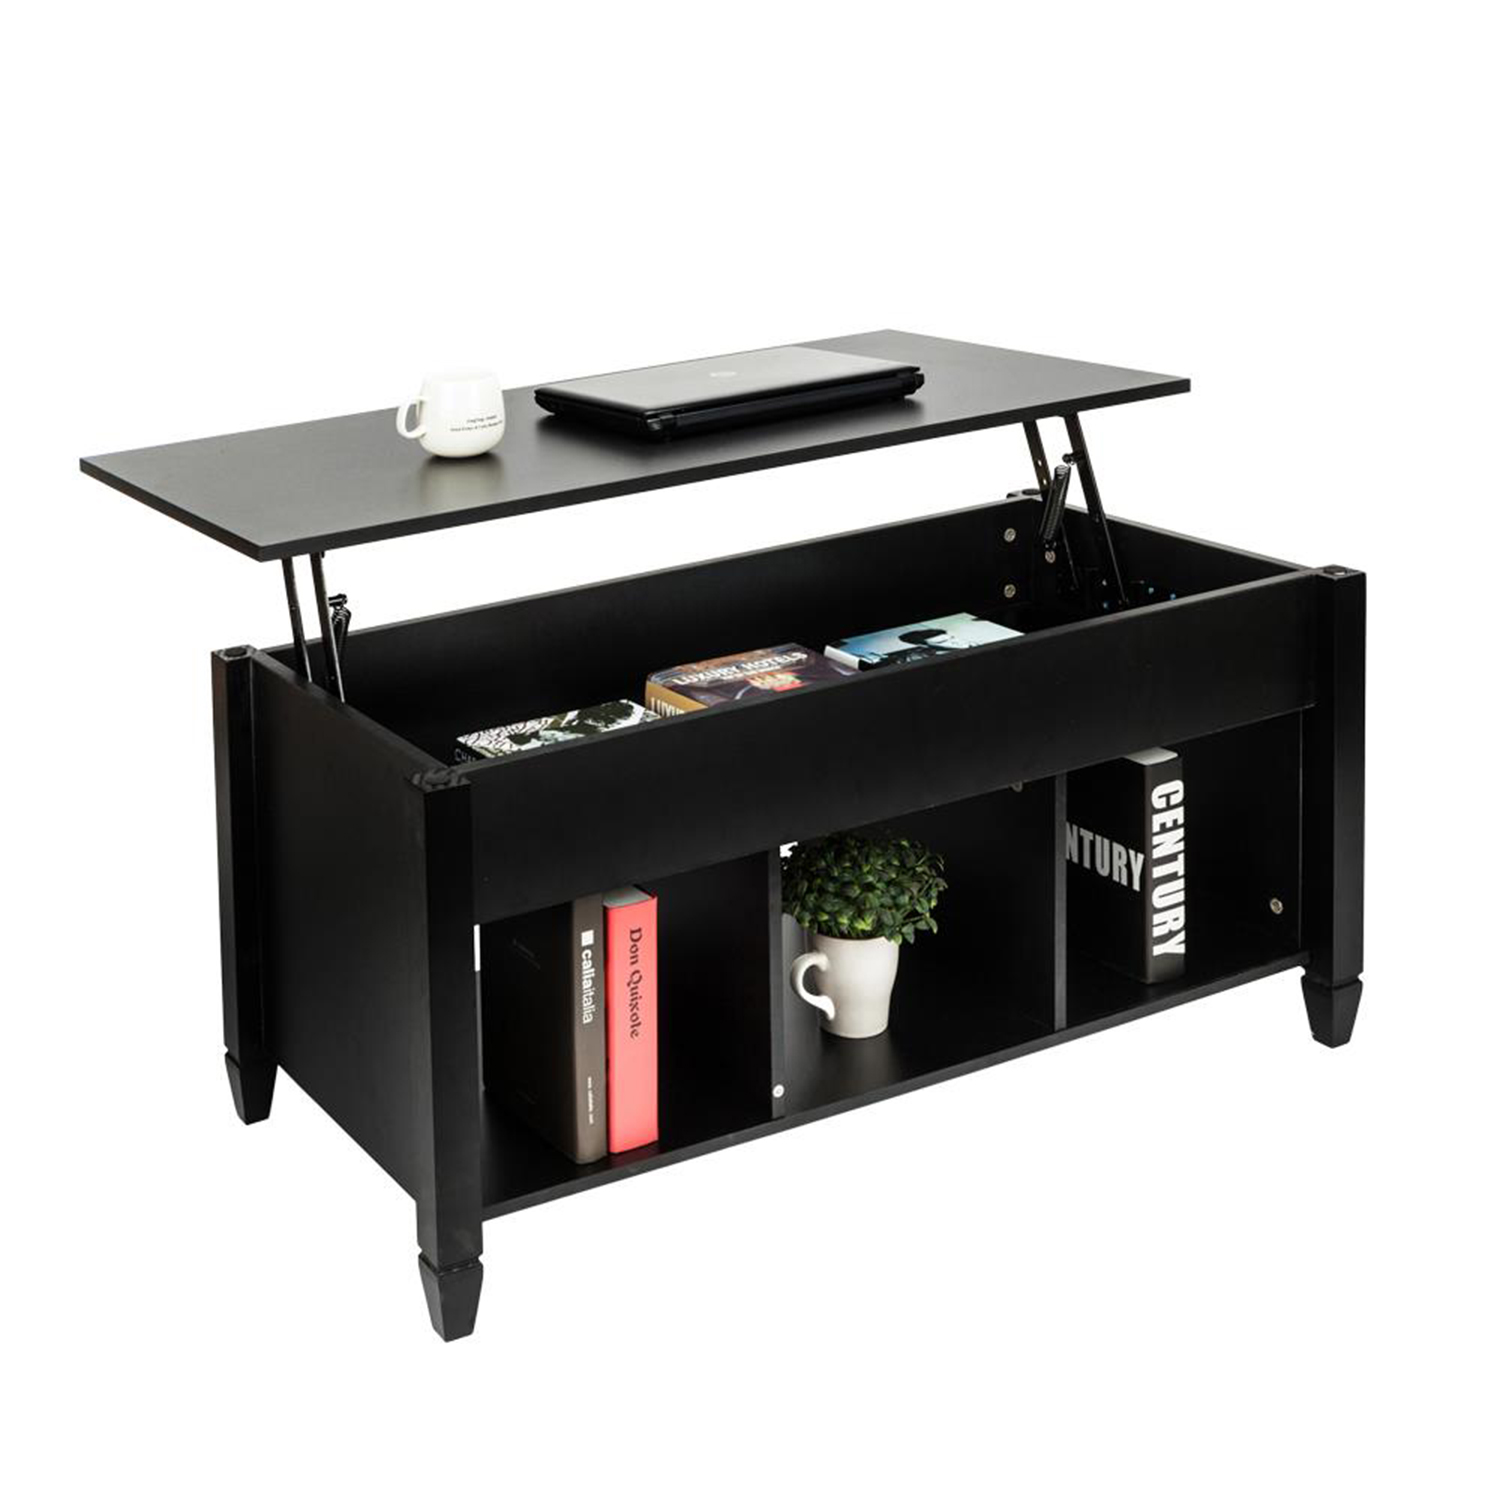 Ktaxon Lift Top Coffee Table Modern Furniture Hidden Compartment and Lift Tablet Black